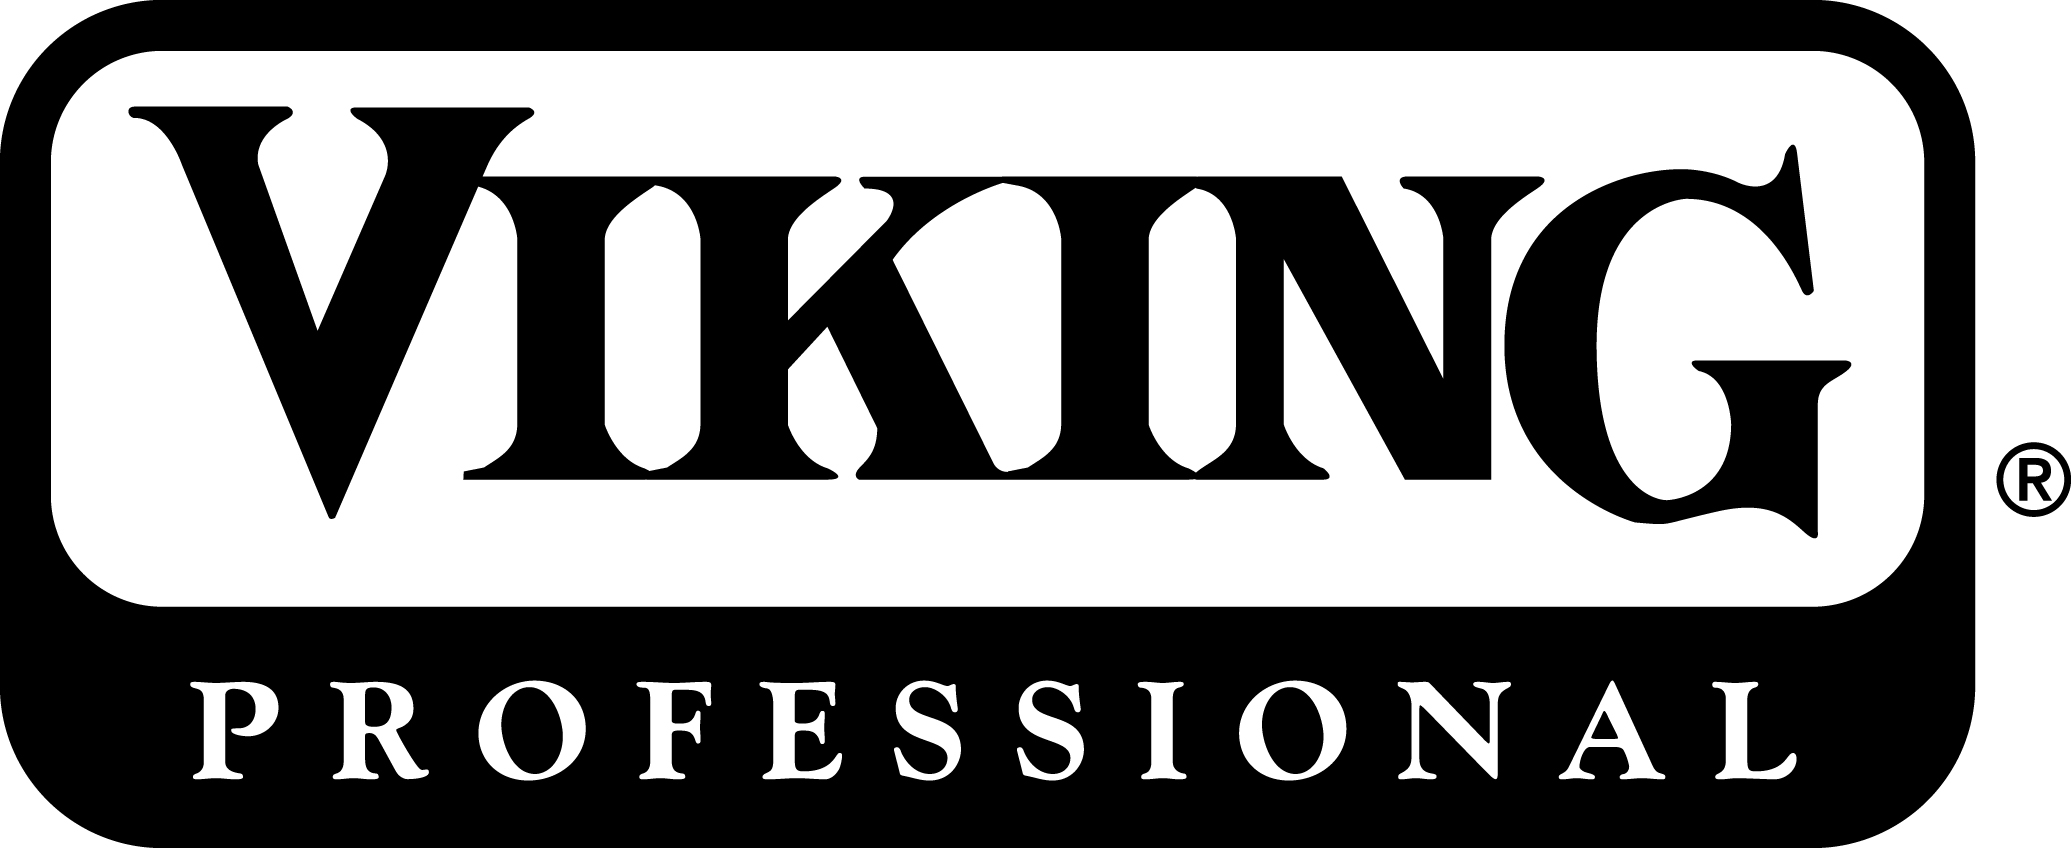 Viking Oven Electrician, Kenmore Oven Repair